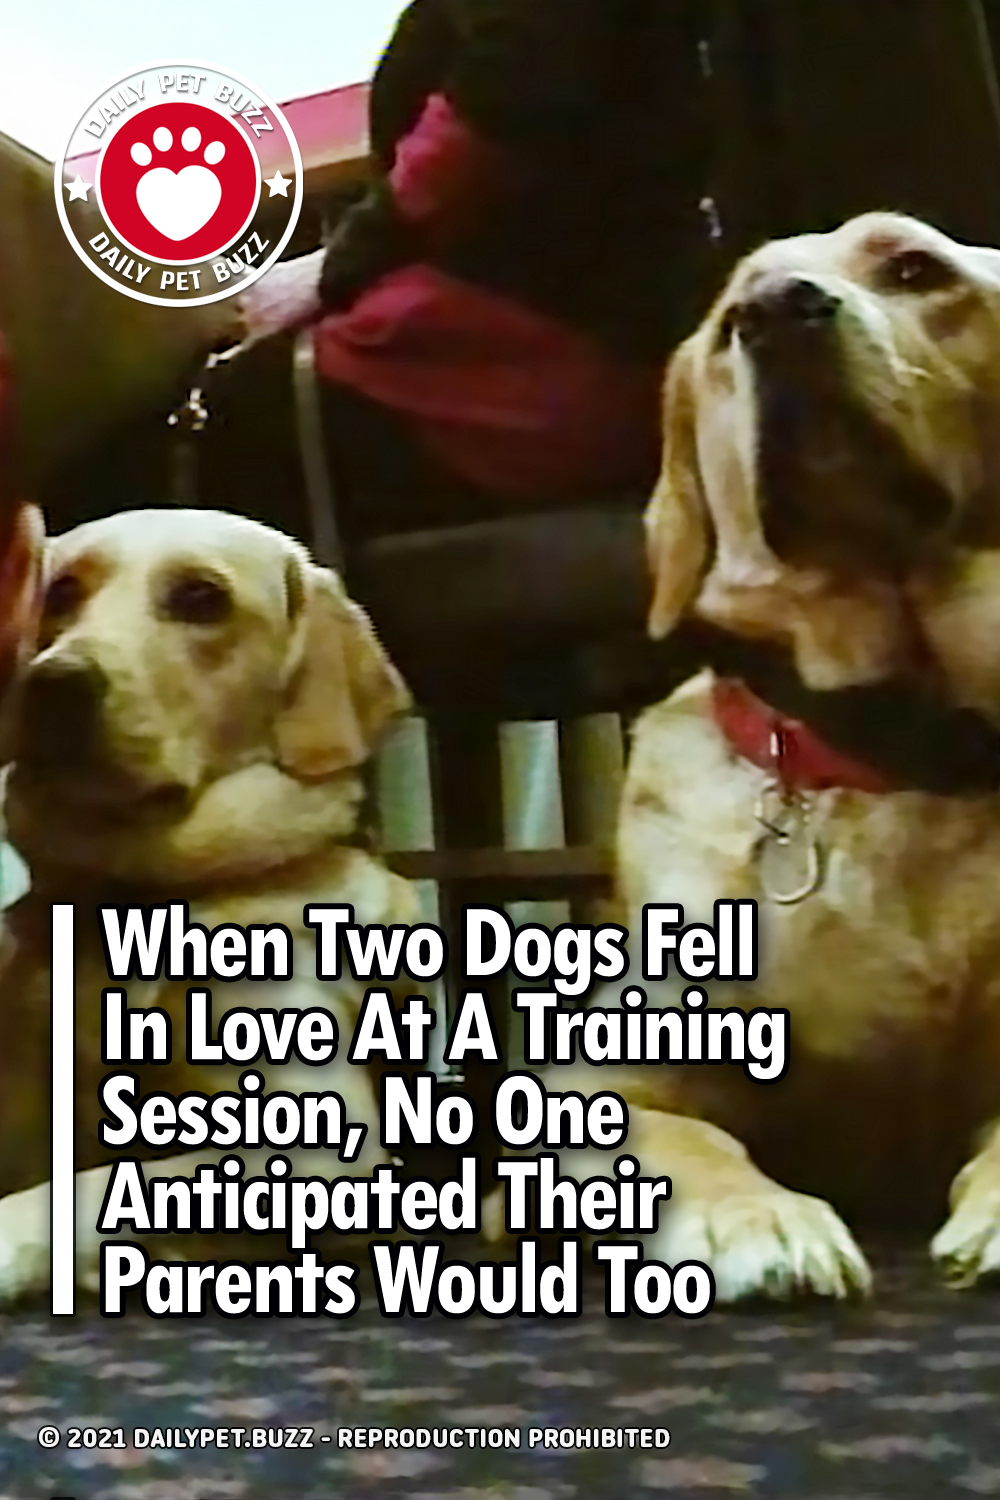 When Two Dogs Fell In Love At A Training Session, No One Anticipated Their Parents Would Too